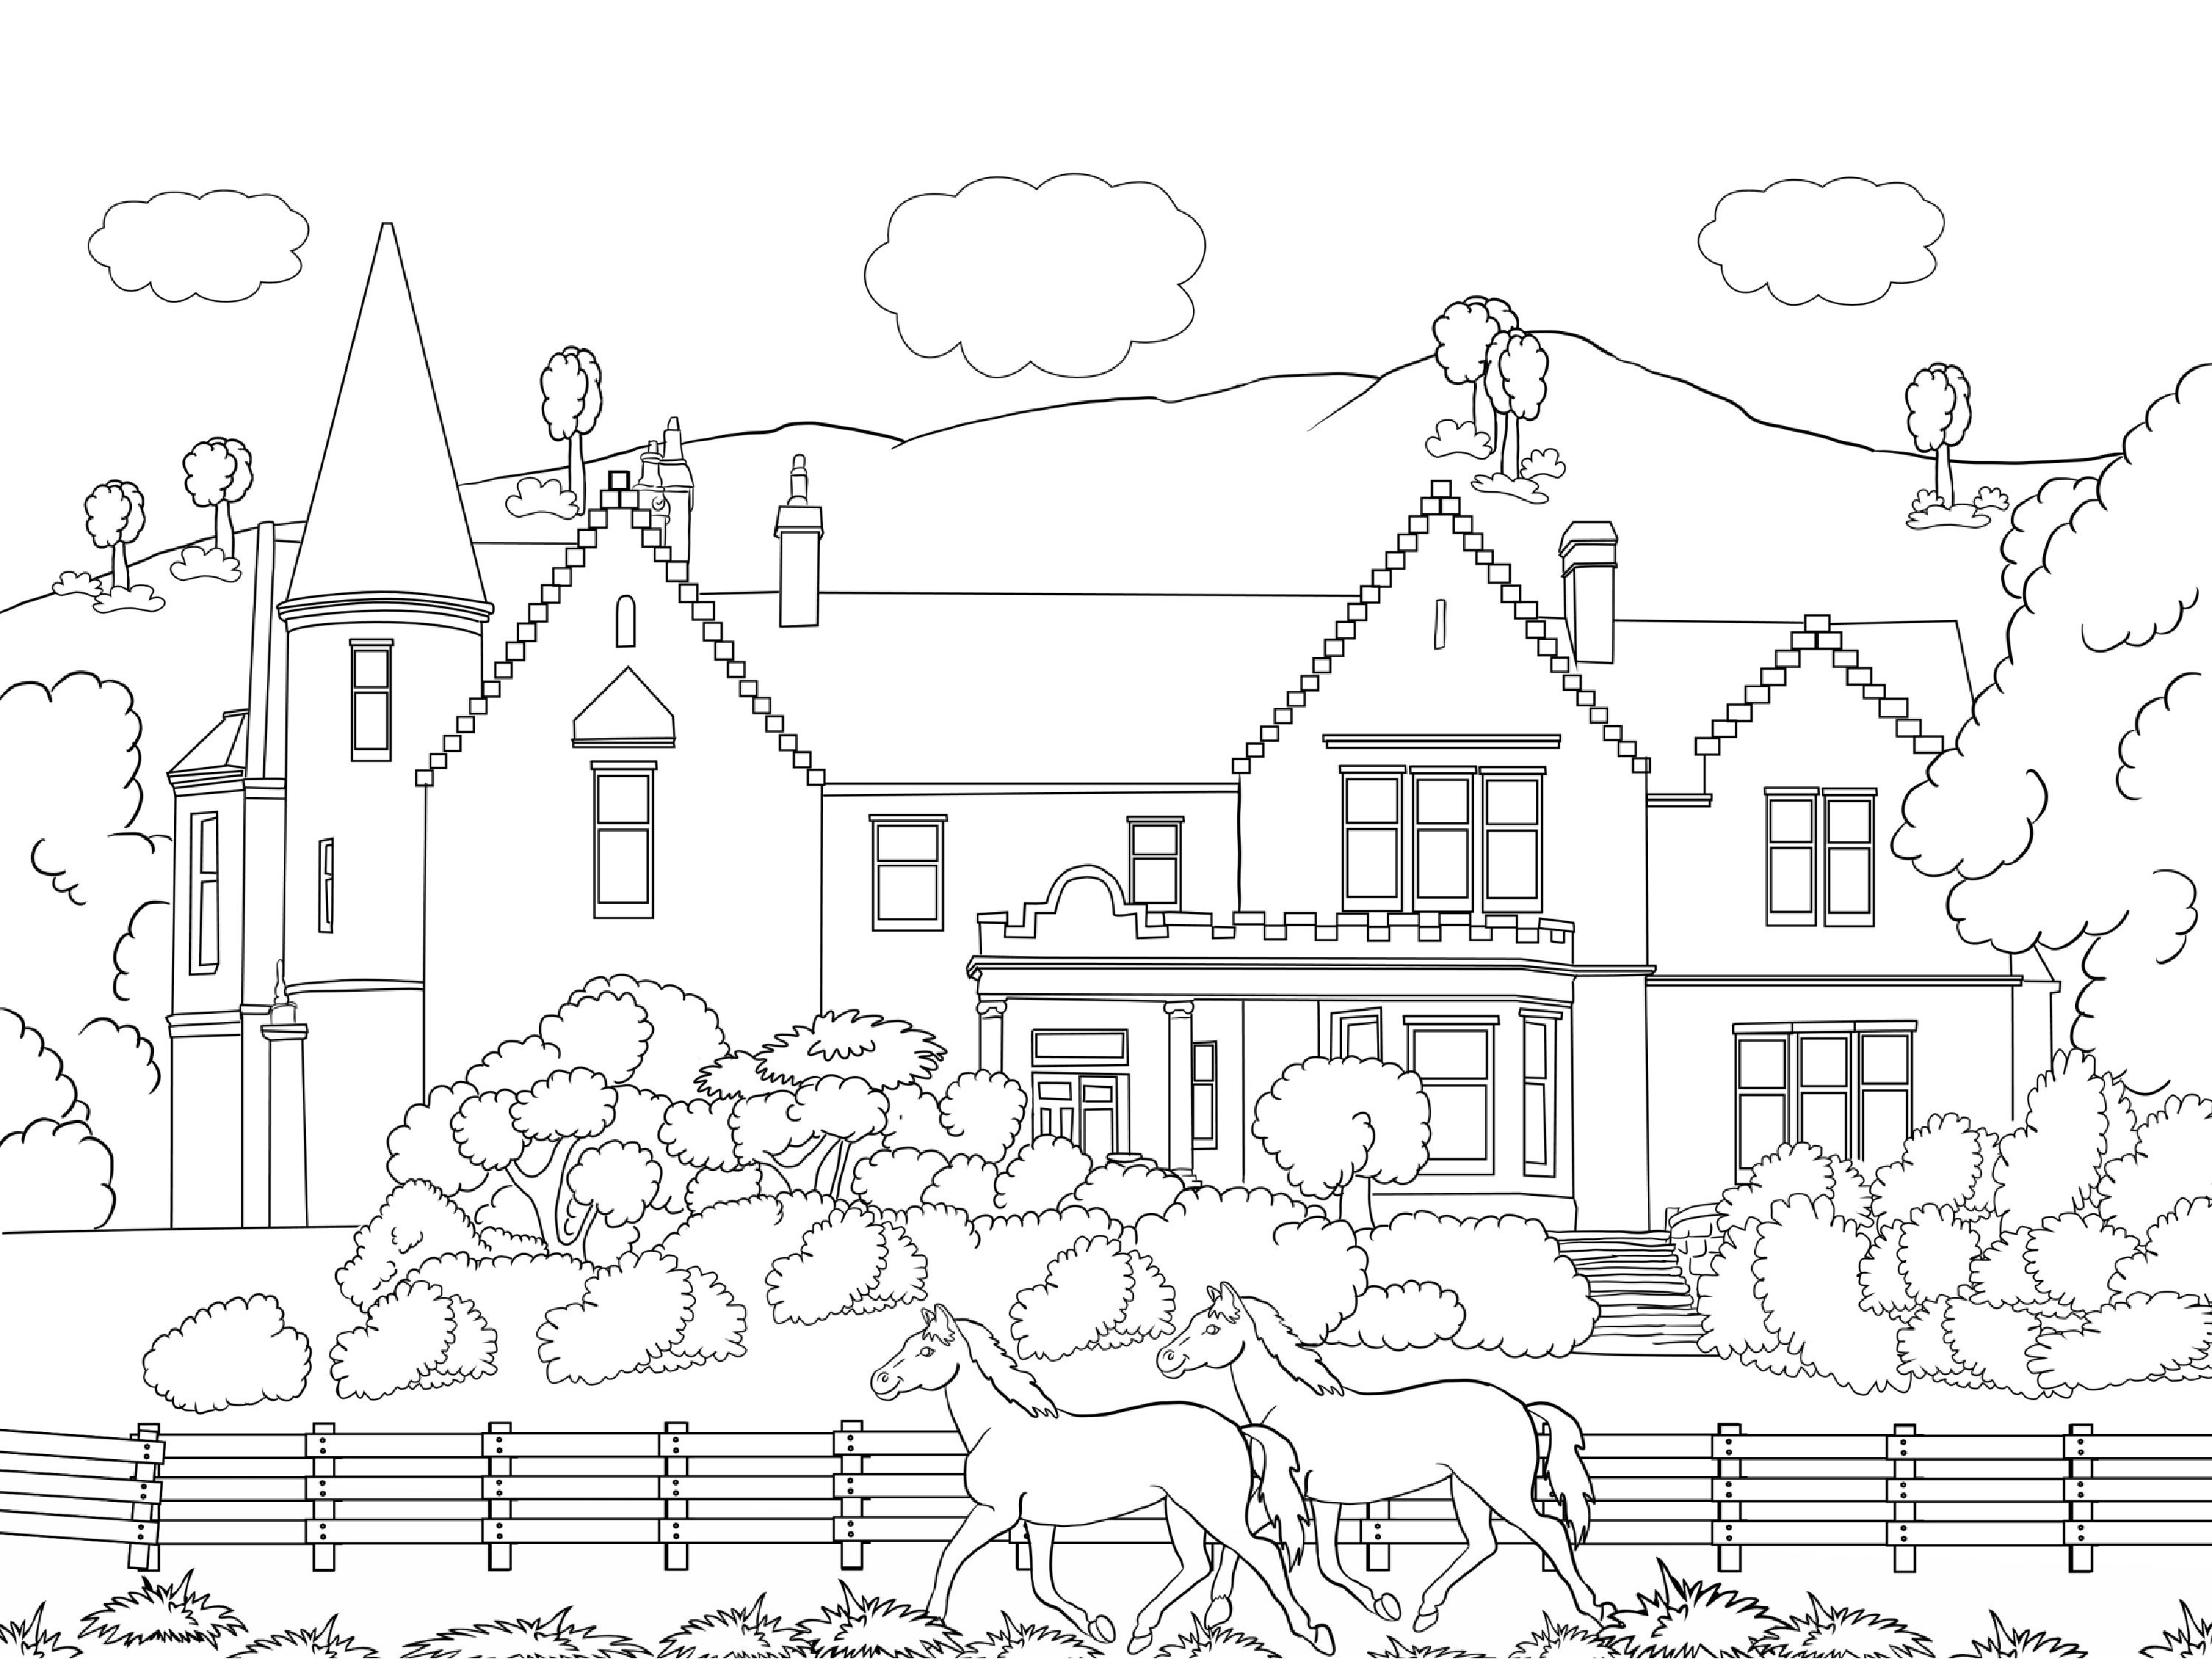 coloring scenery for kids mountain scenery coloring pages at getcoloringscom free kids for scenery coloring